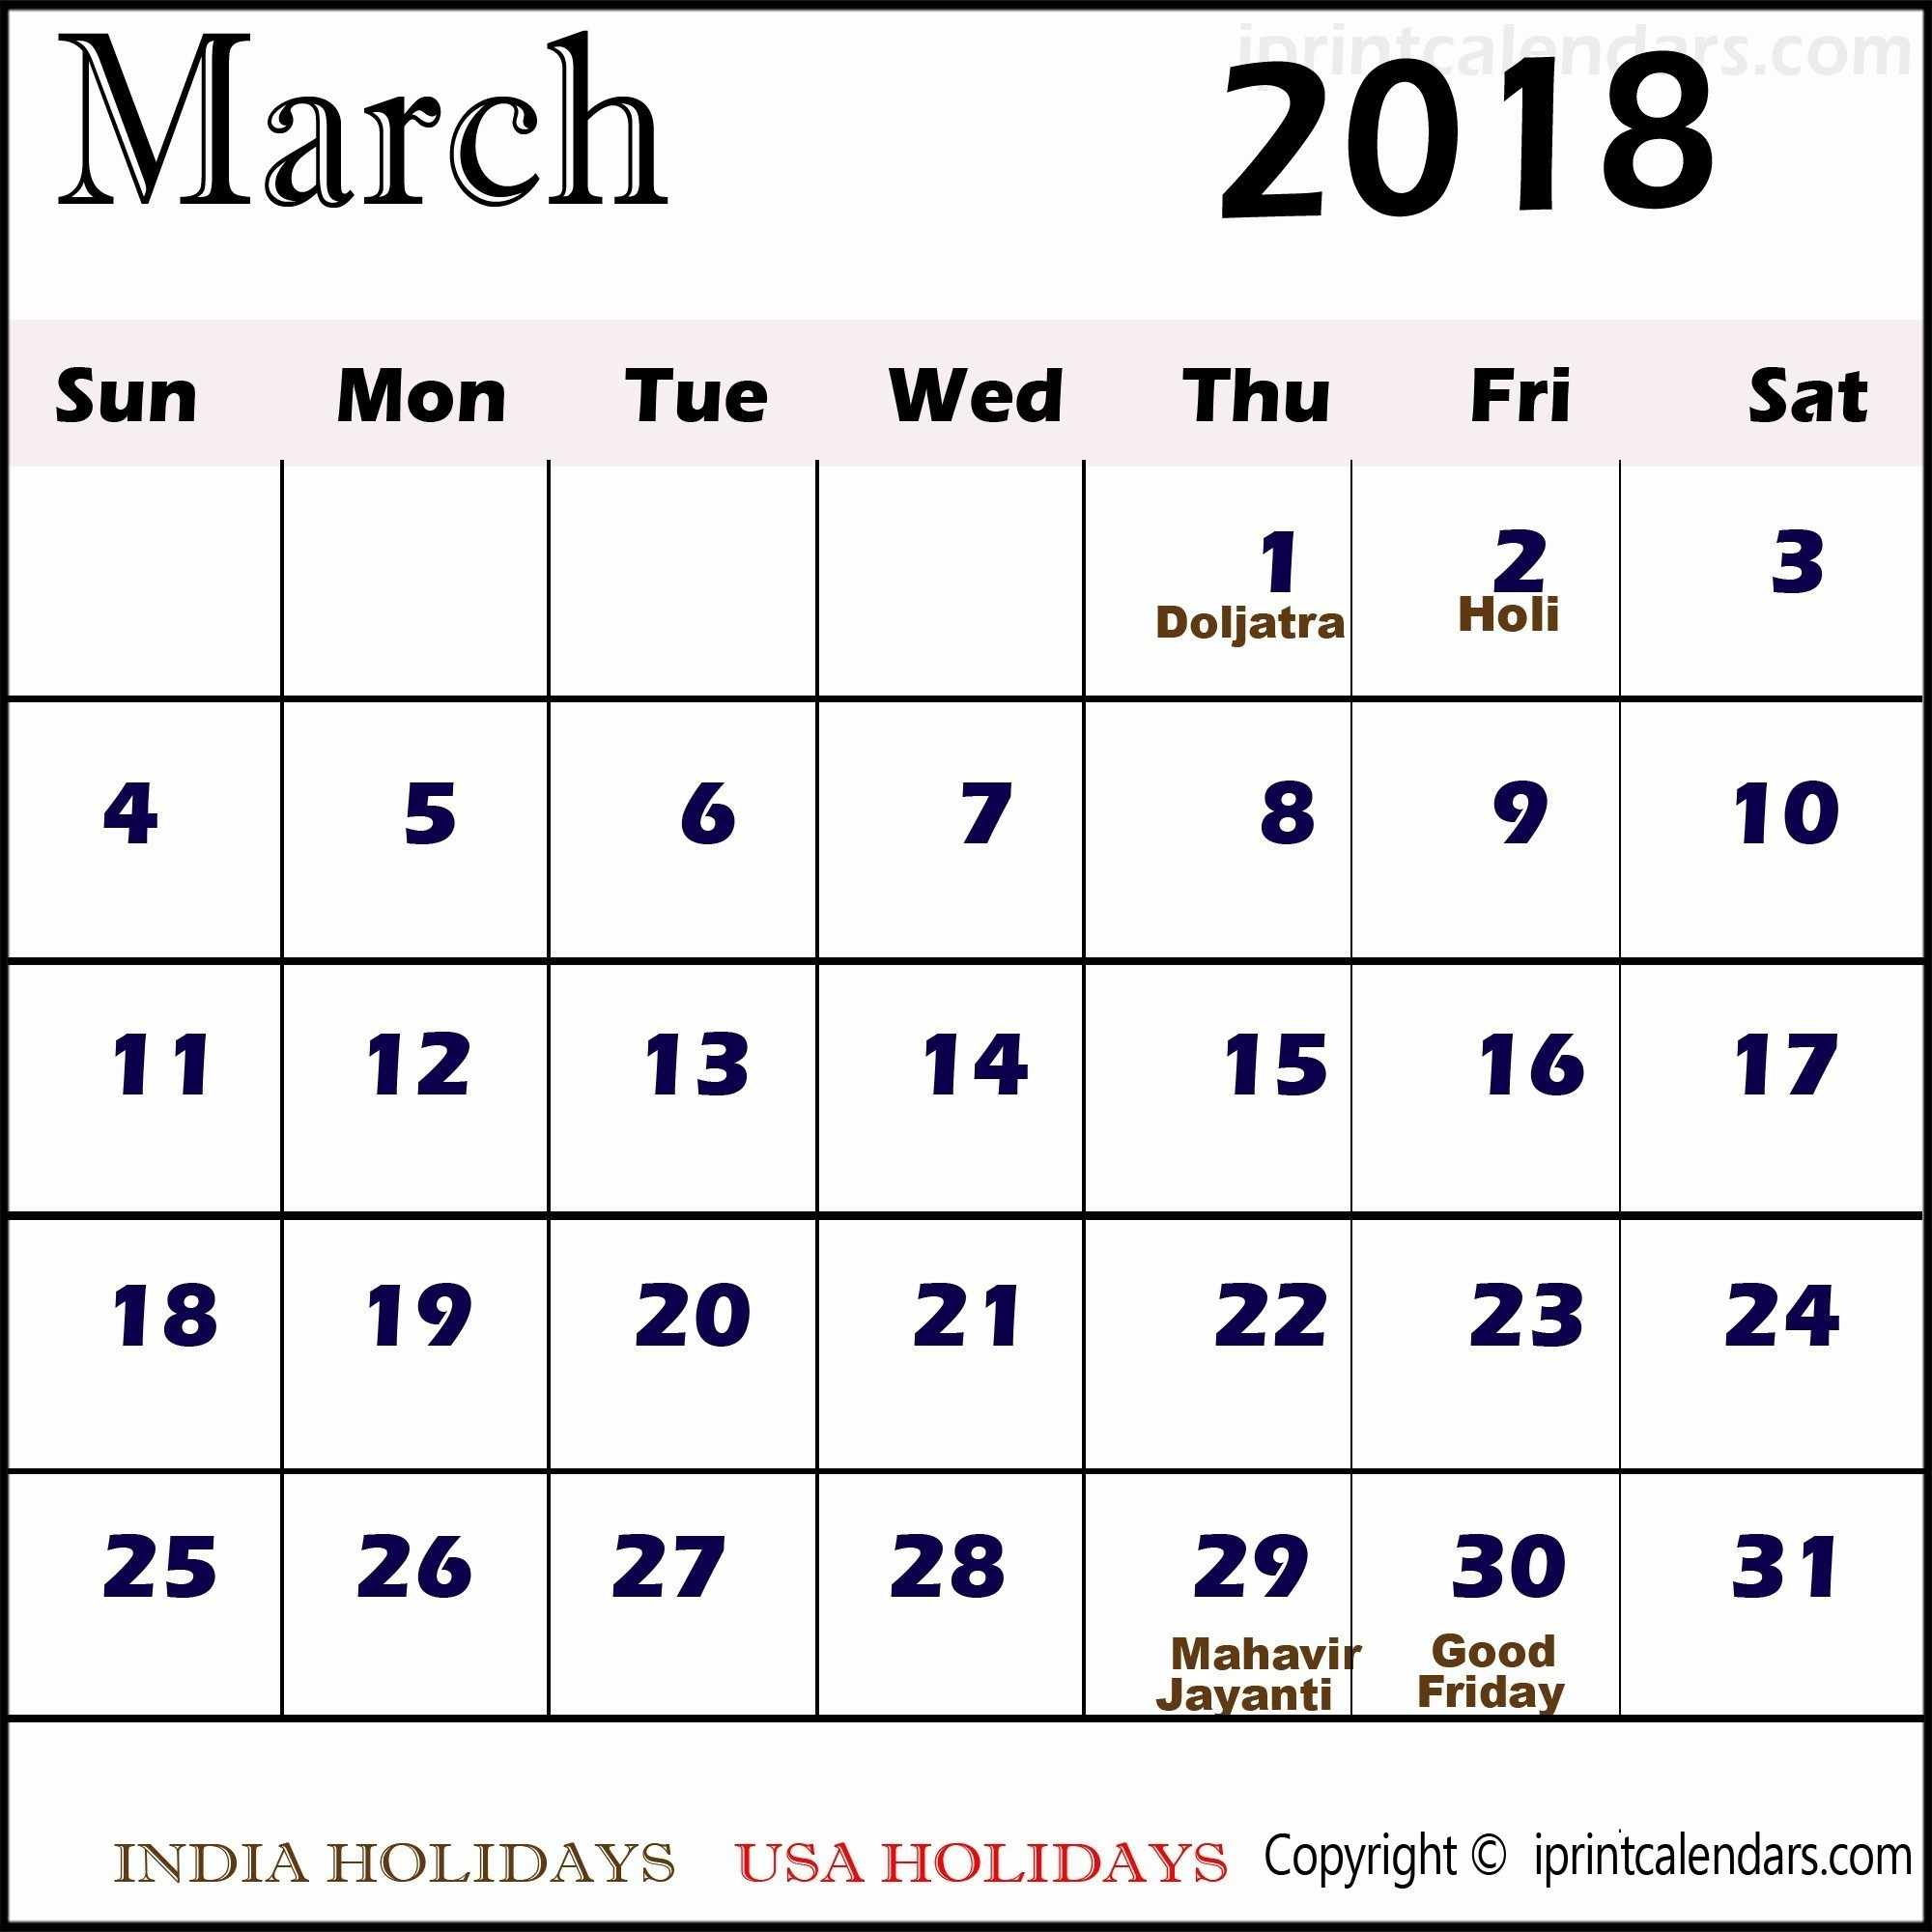 March 2019 Calendar Uk Printable Recientes 2019 Calendar Holidays Of March 2019 Calendar Uk Printable Más Actual Sat Test Dates Your Best Test Date 2017 2018 2019 2020